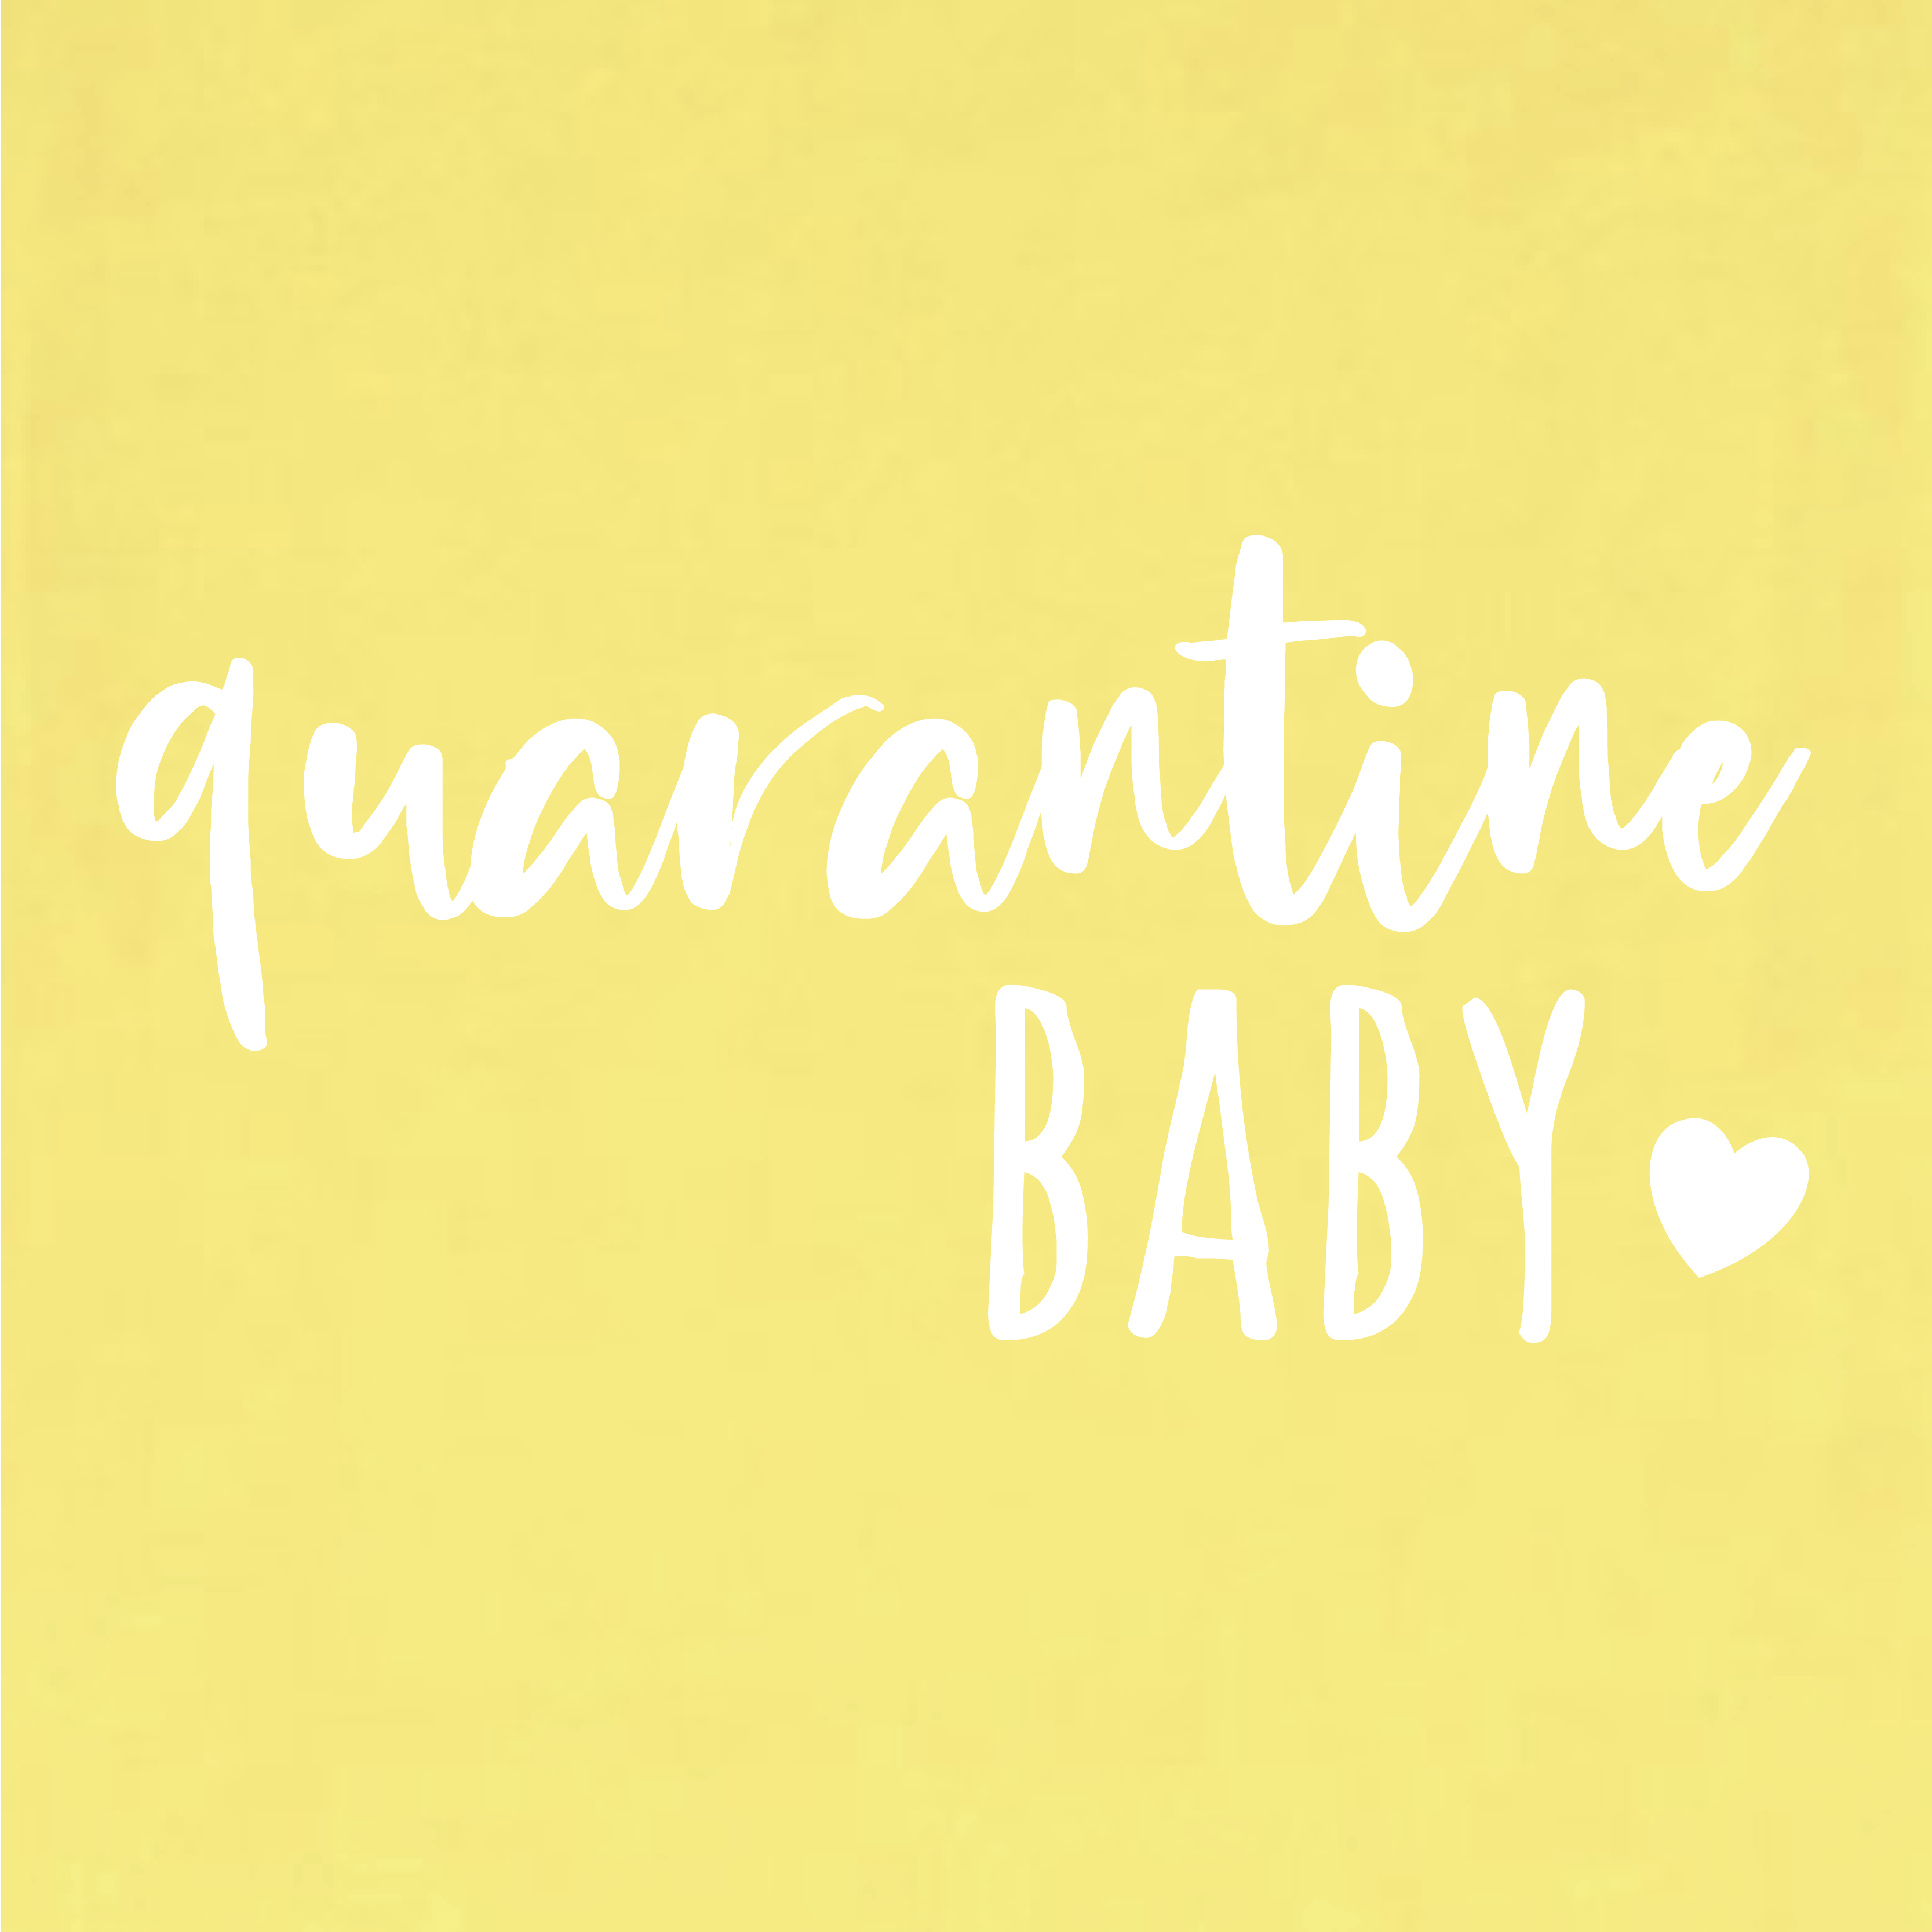 Quarantaine design 6 - Quarantaine Baby